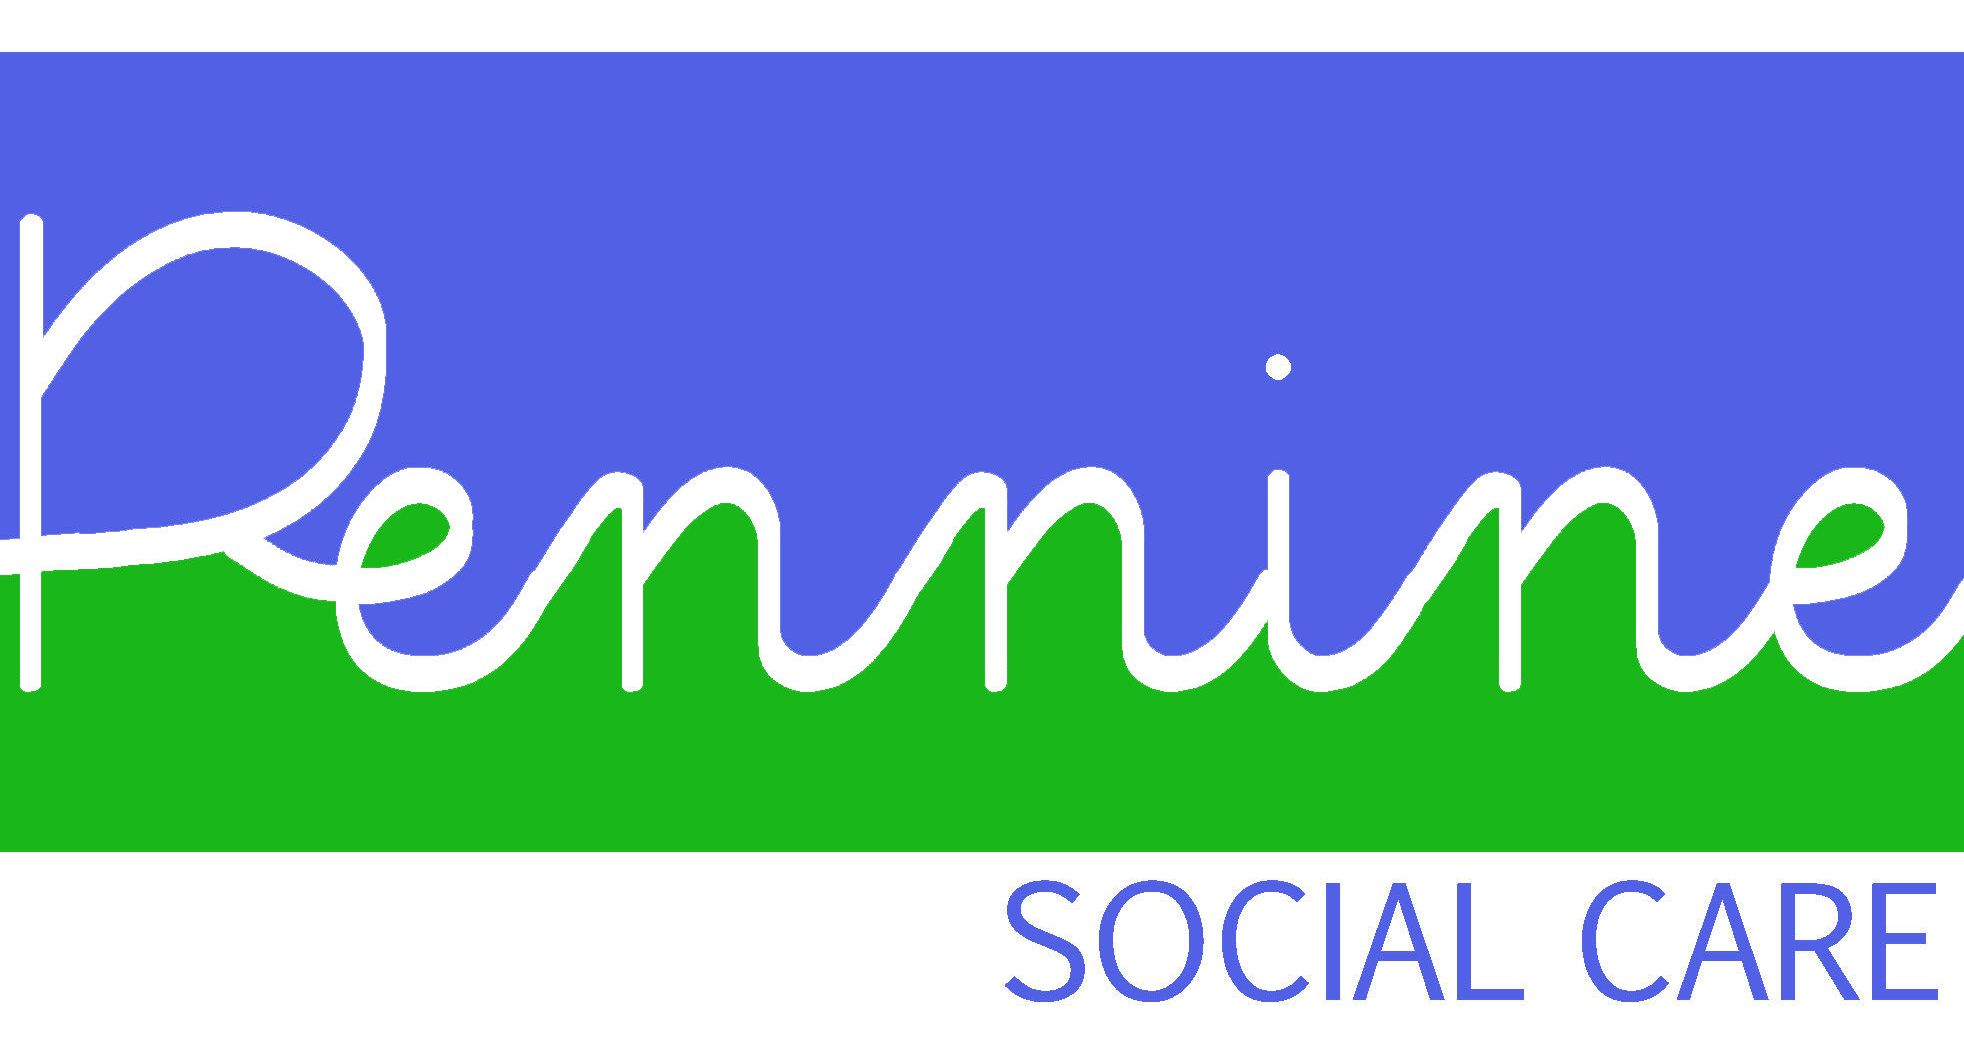 Personalised Care At Home - Provided by Pennine Social Care Logo